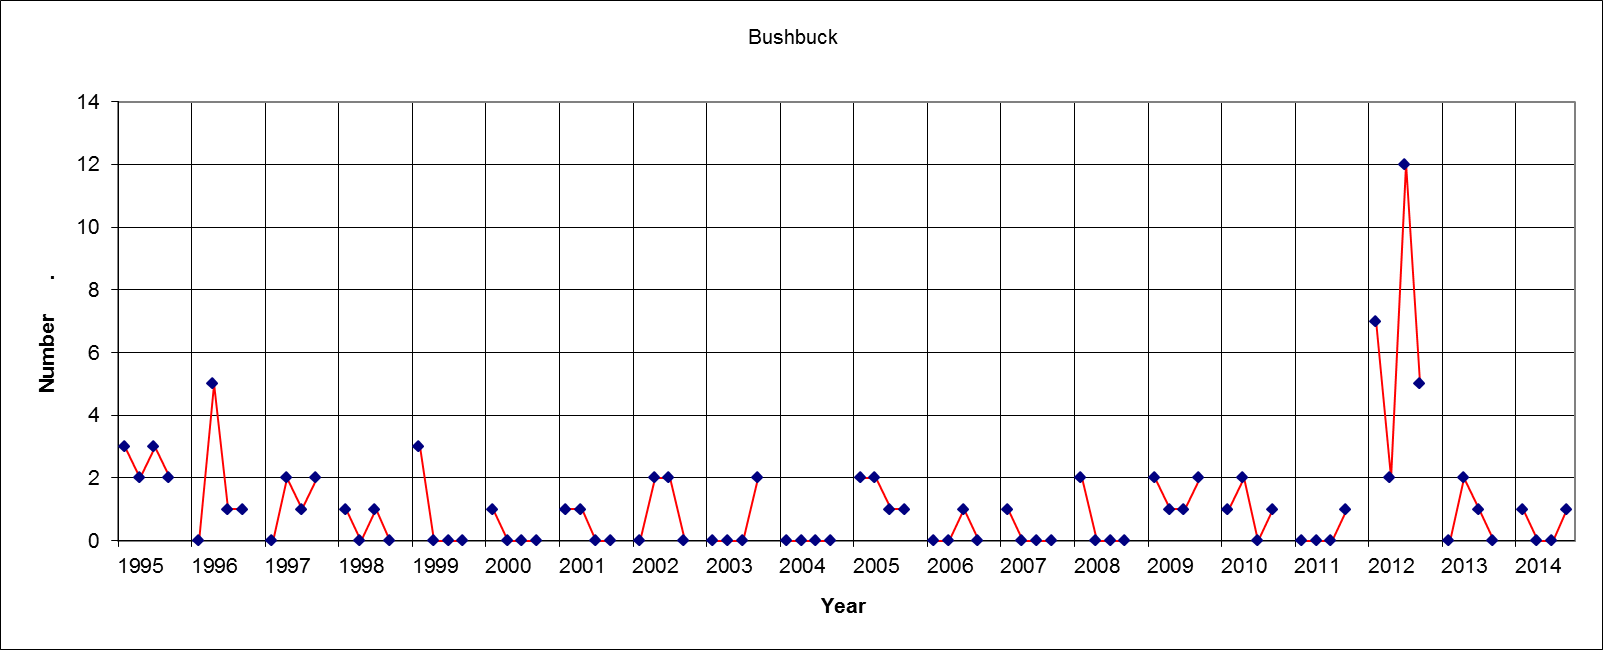 Bushbuck Results (Four figures each year = Sat am, Sat pm, Sun am, Sun pm